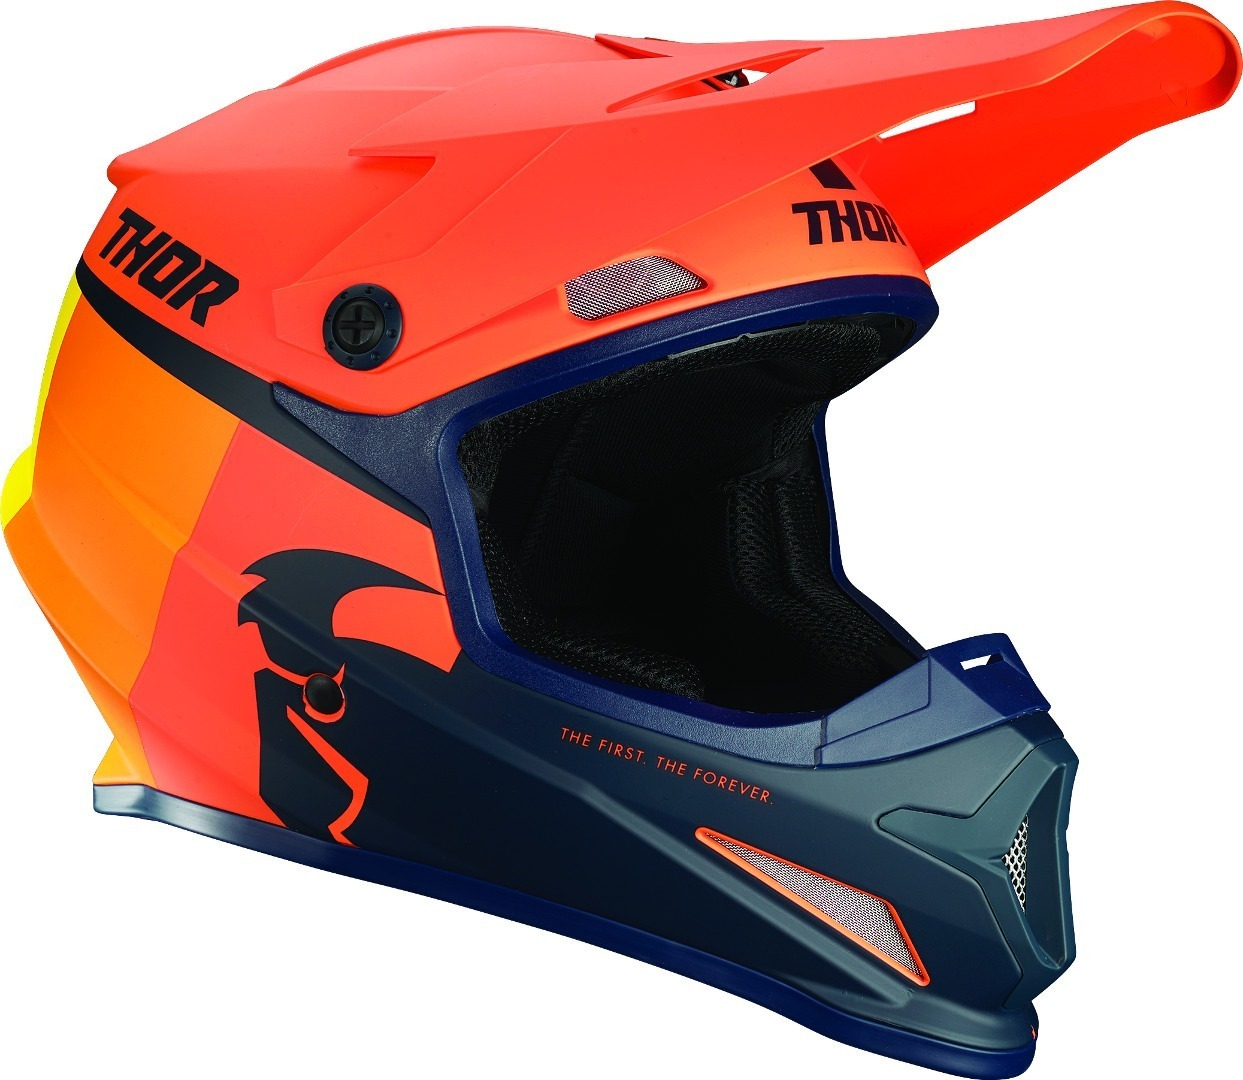 Thor Sector Racer Motocross Helm, blau-orange, Größe S, blau-orange, Größe S